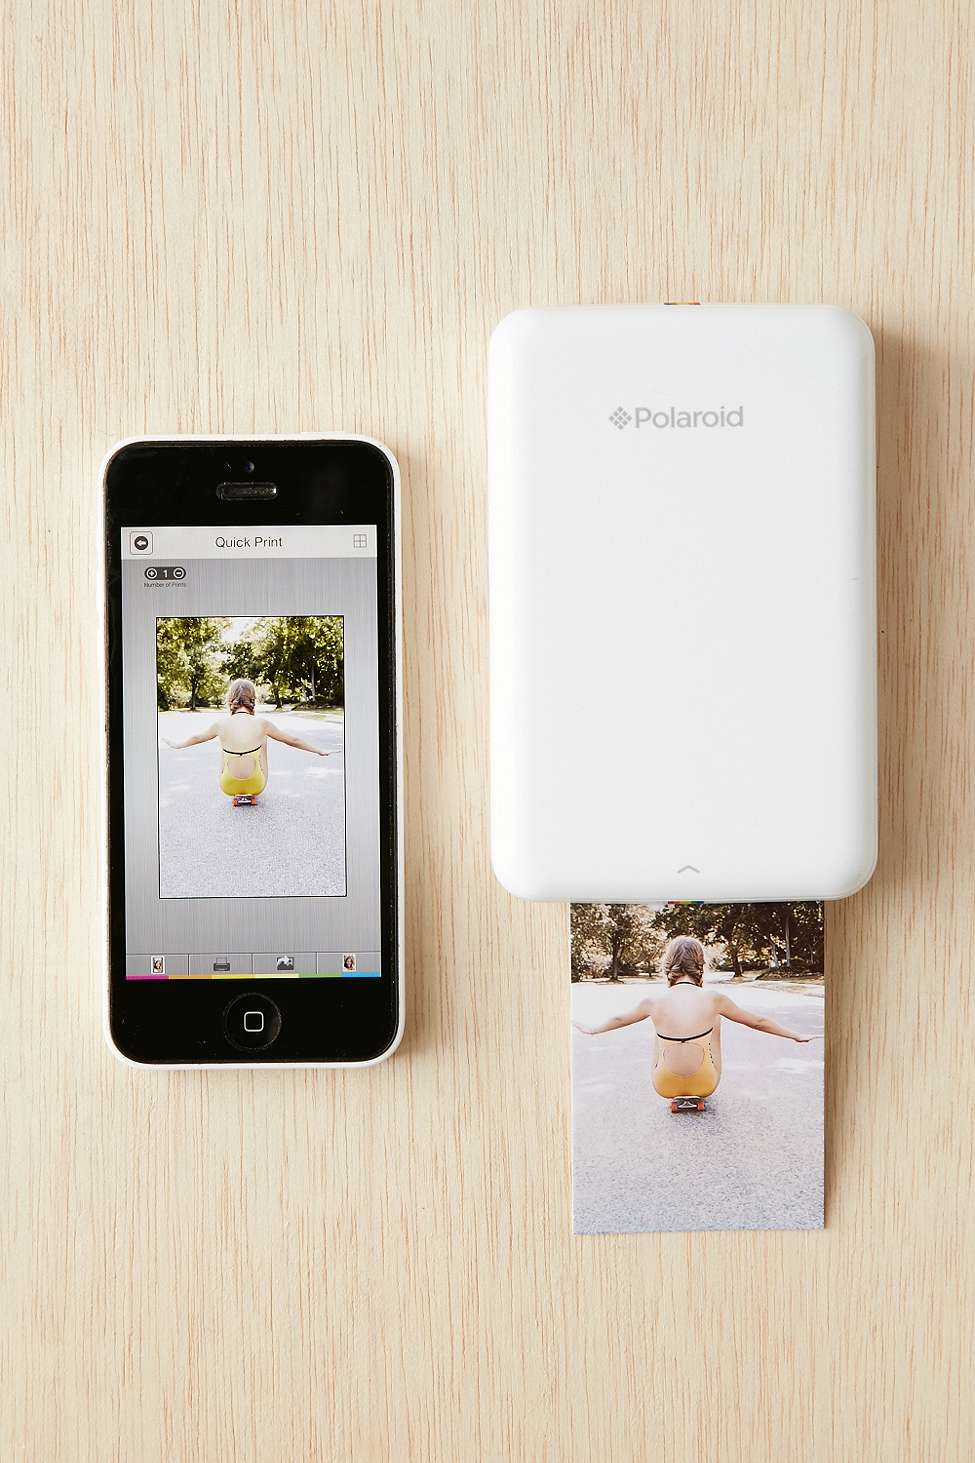 polaroid phone printer Unique And Quirky Gift Ideas Any Odd Person Will Appreciate (Fun Gifts!)